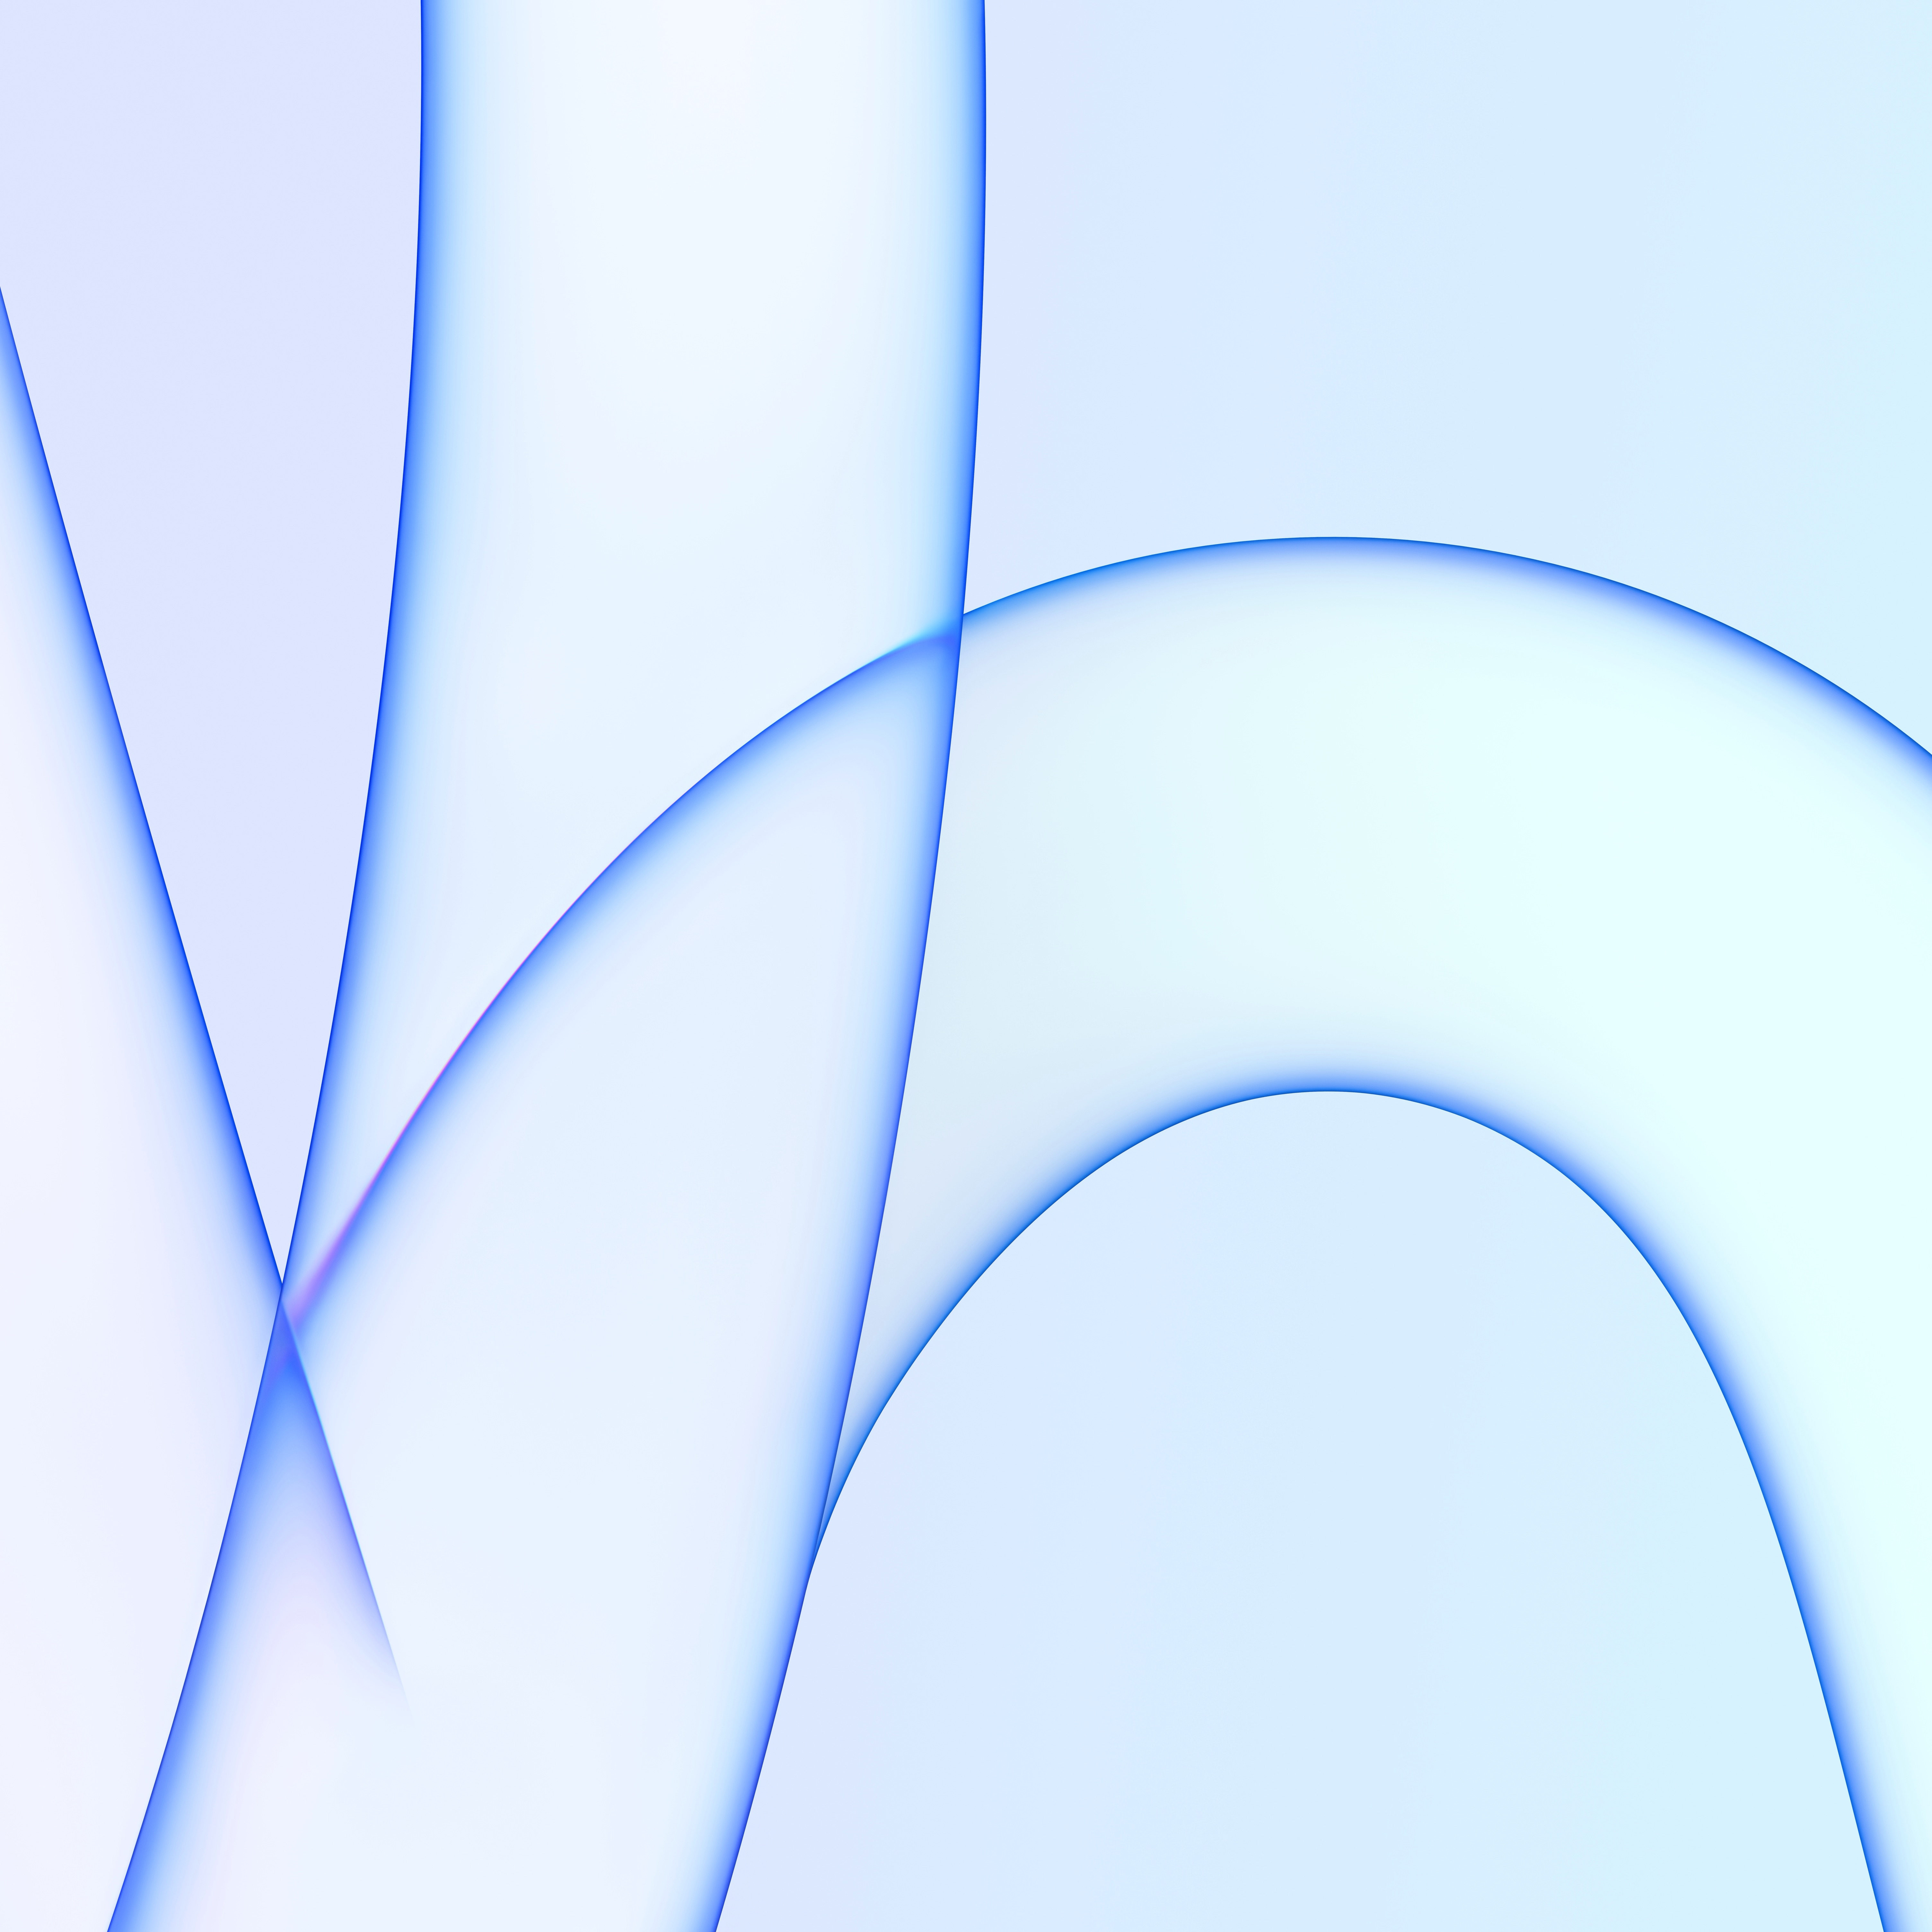 iMac 2021 Wallpaper light blue